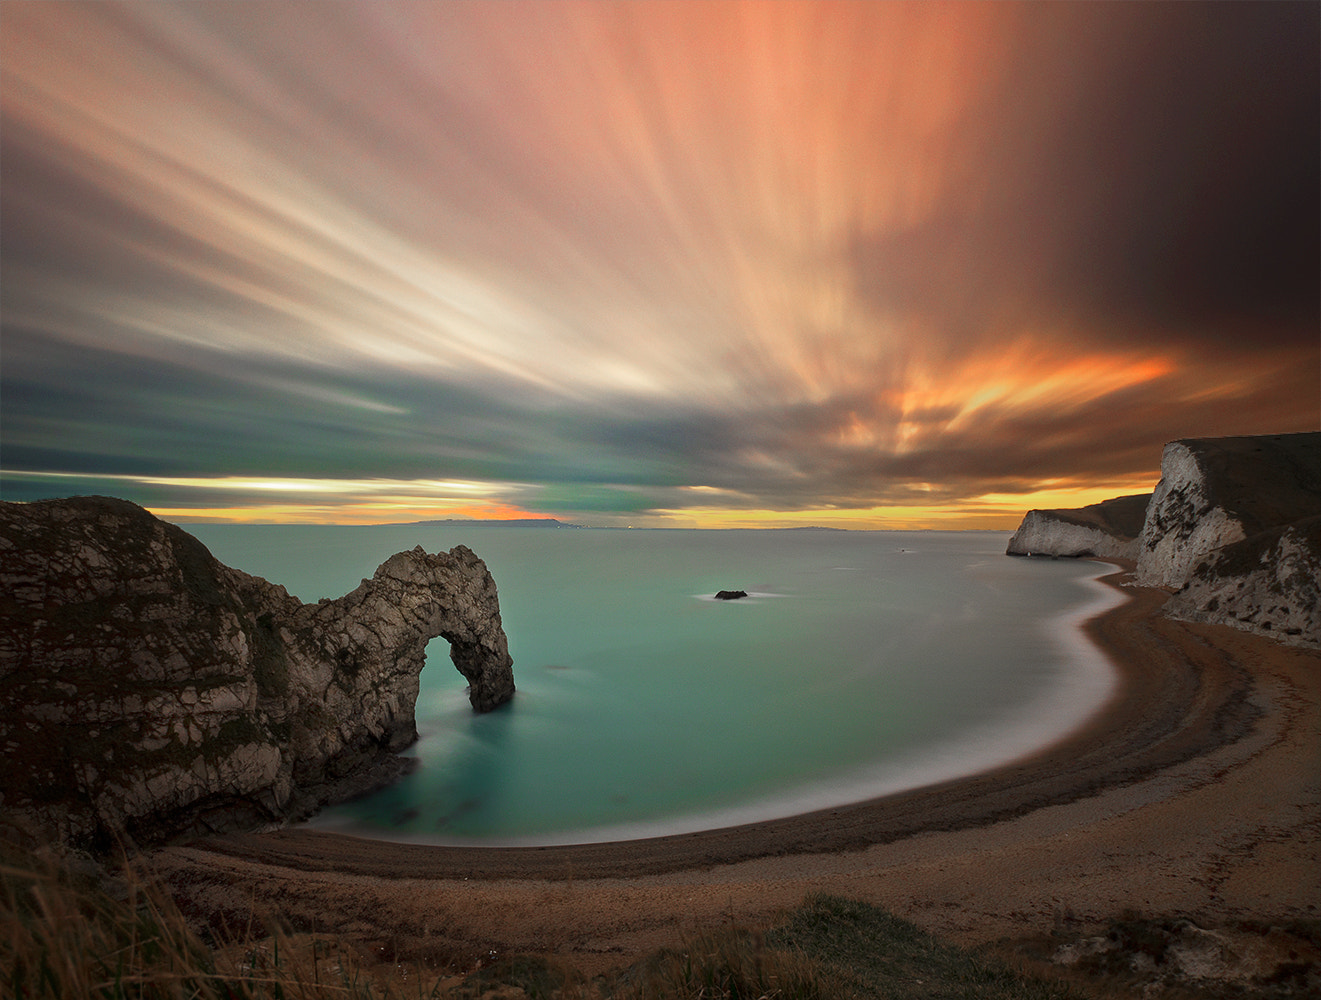 Photograph Jurassic Sunset by n hasshim on 500px